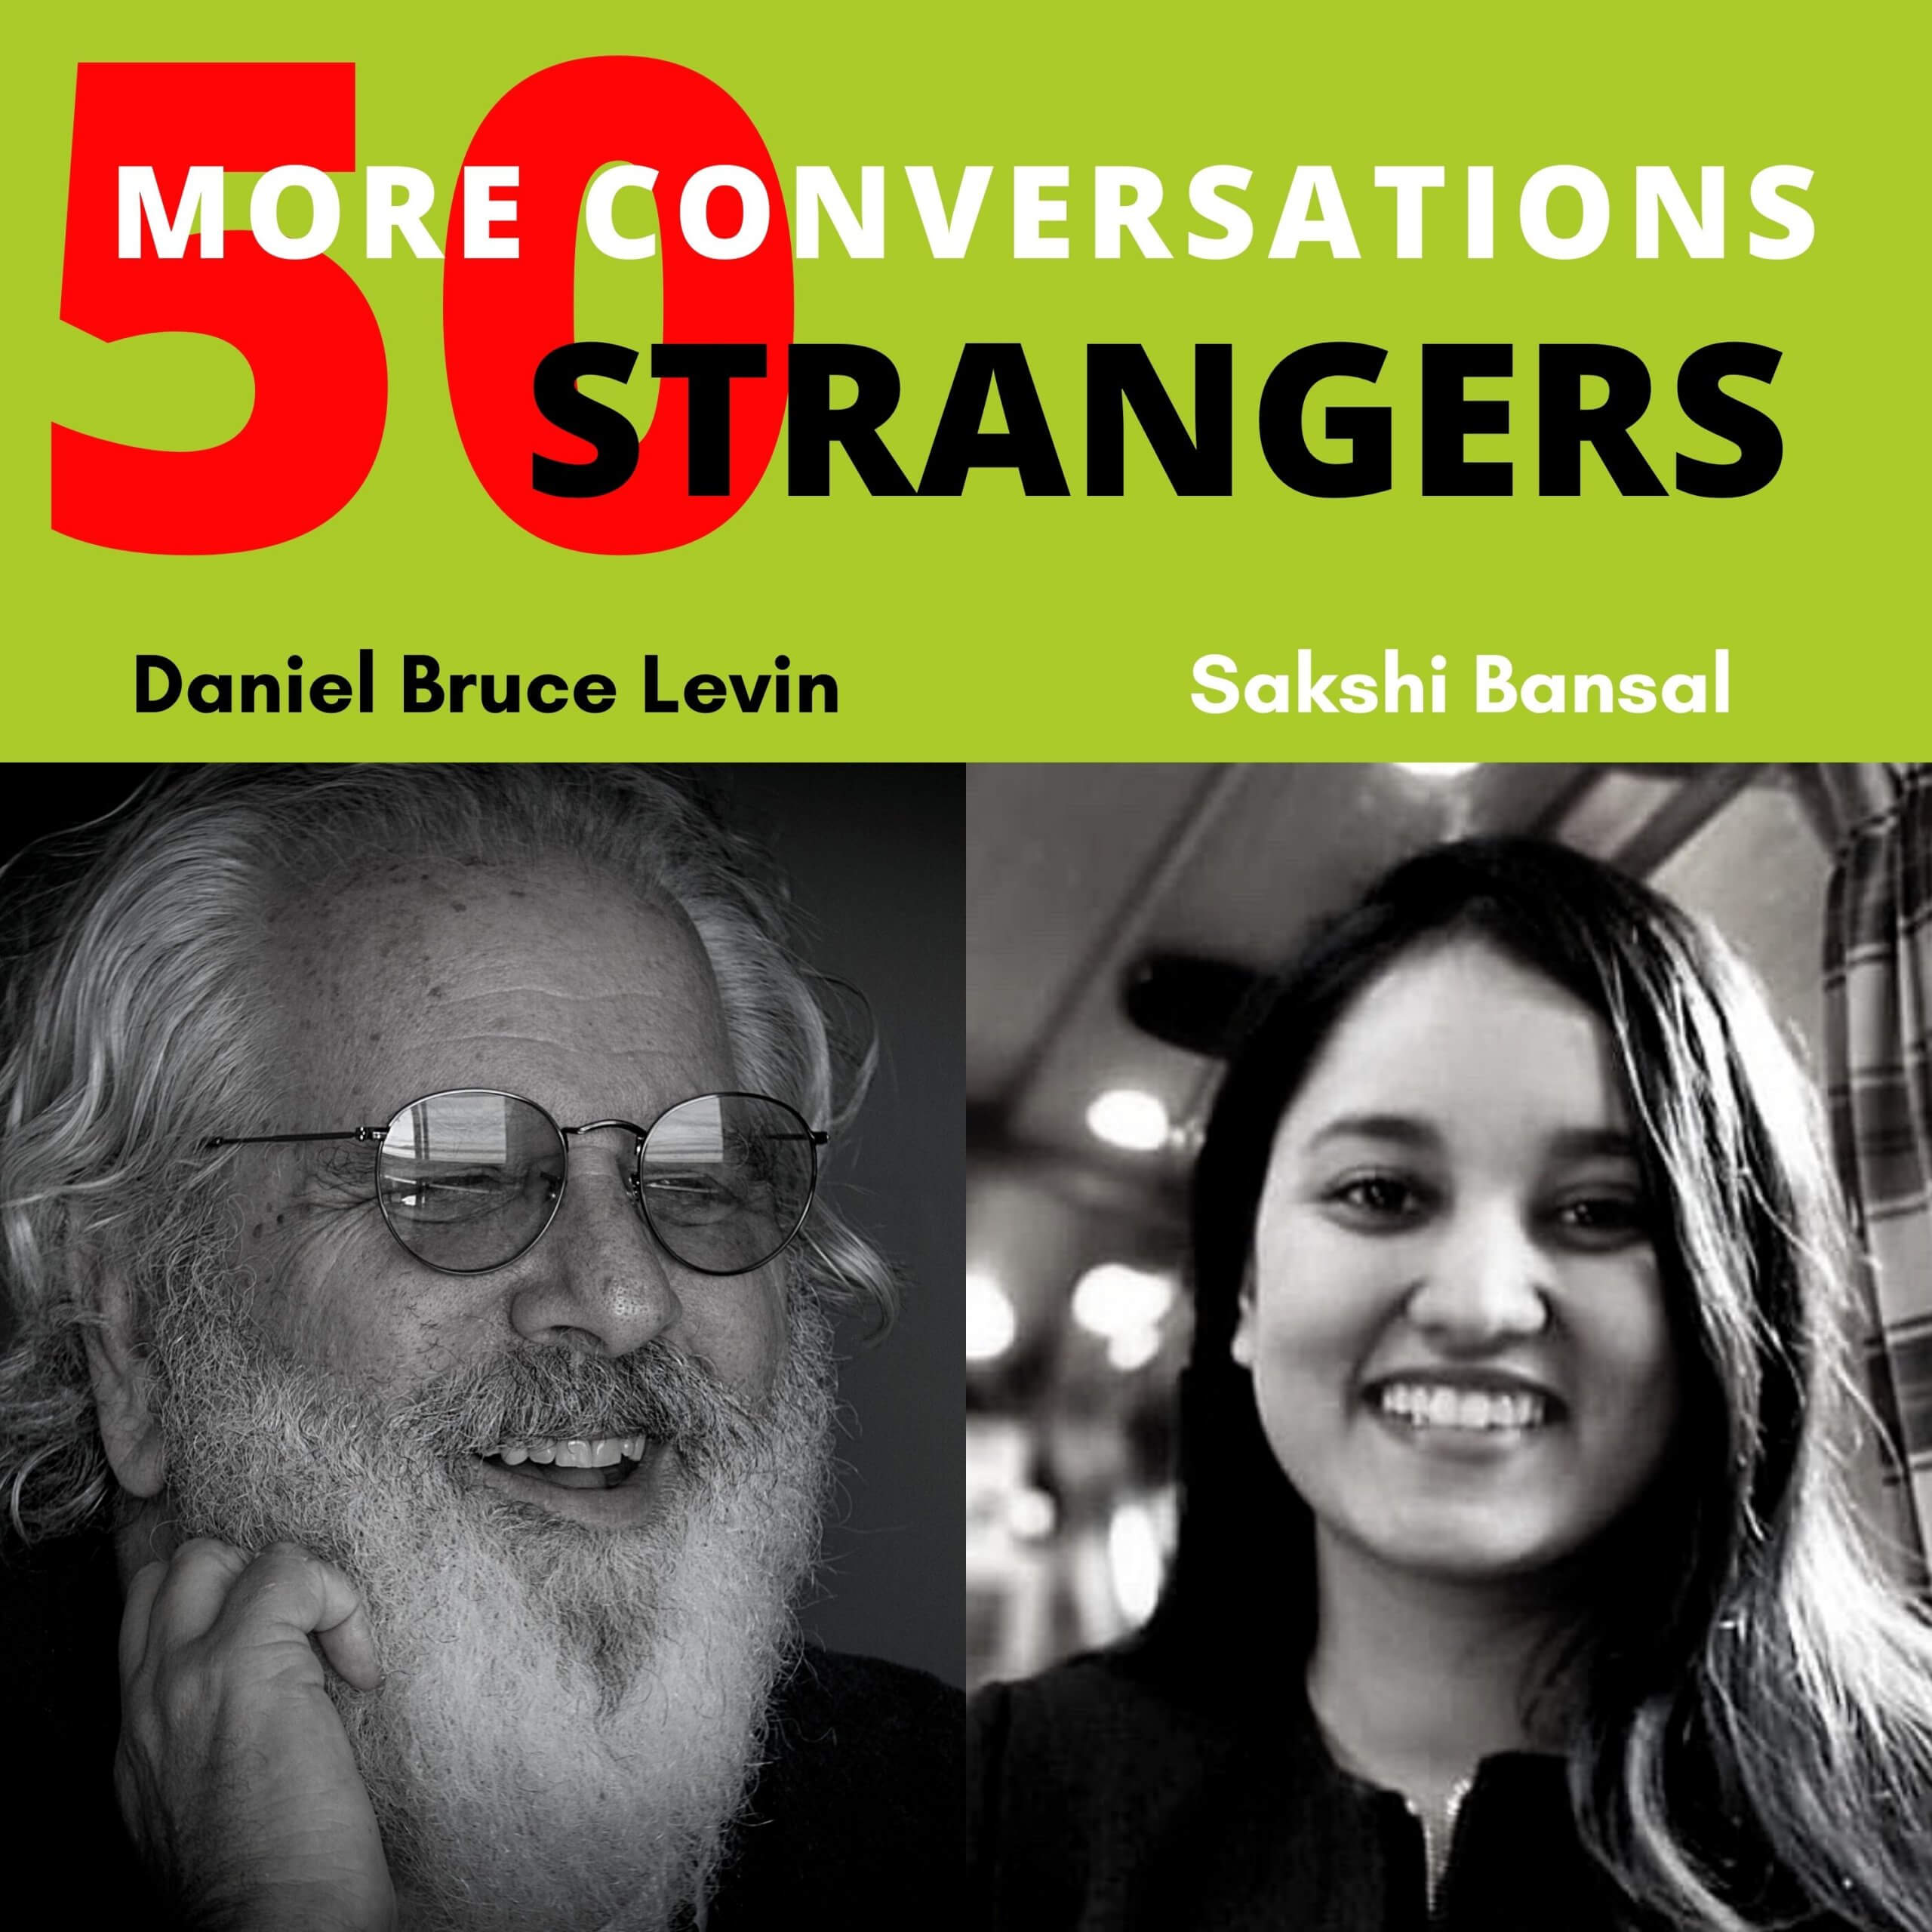 50 More Conversations with 50 More Strangers with Sakshi Bansal